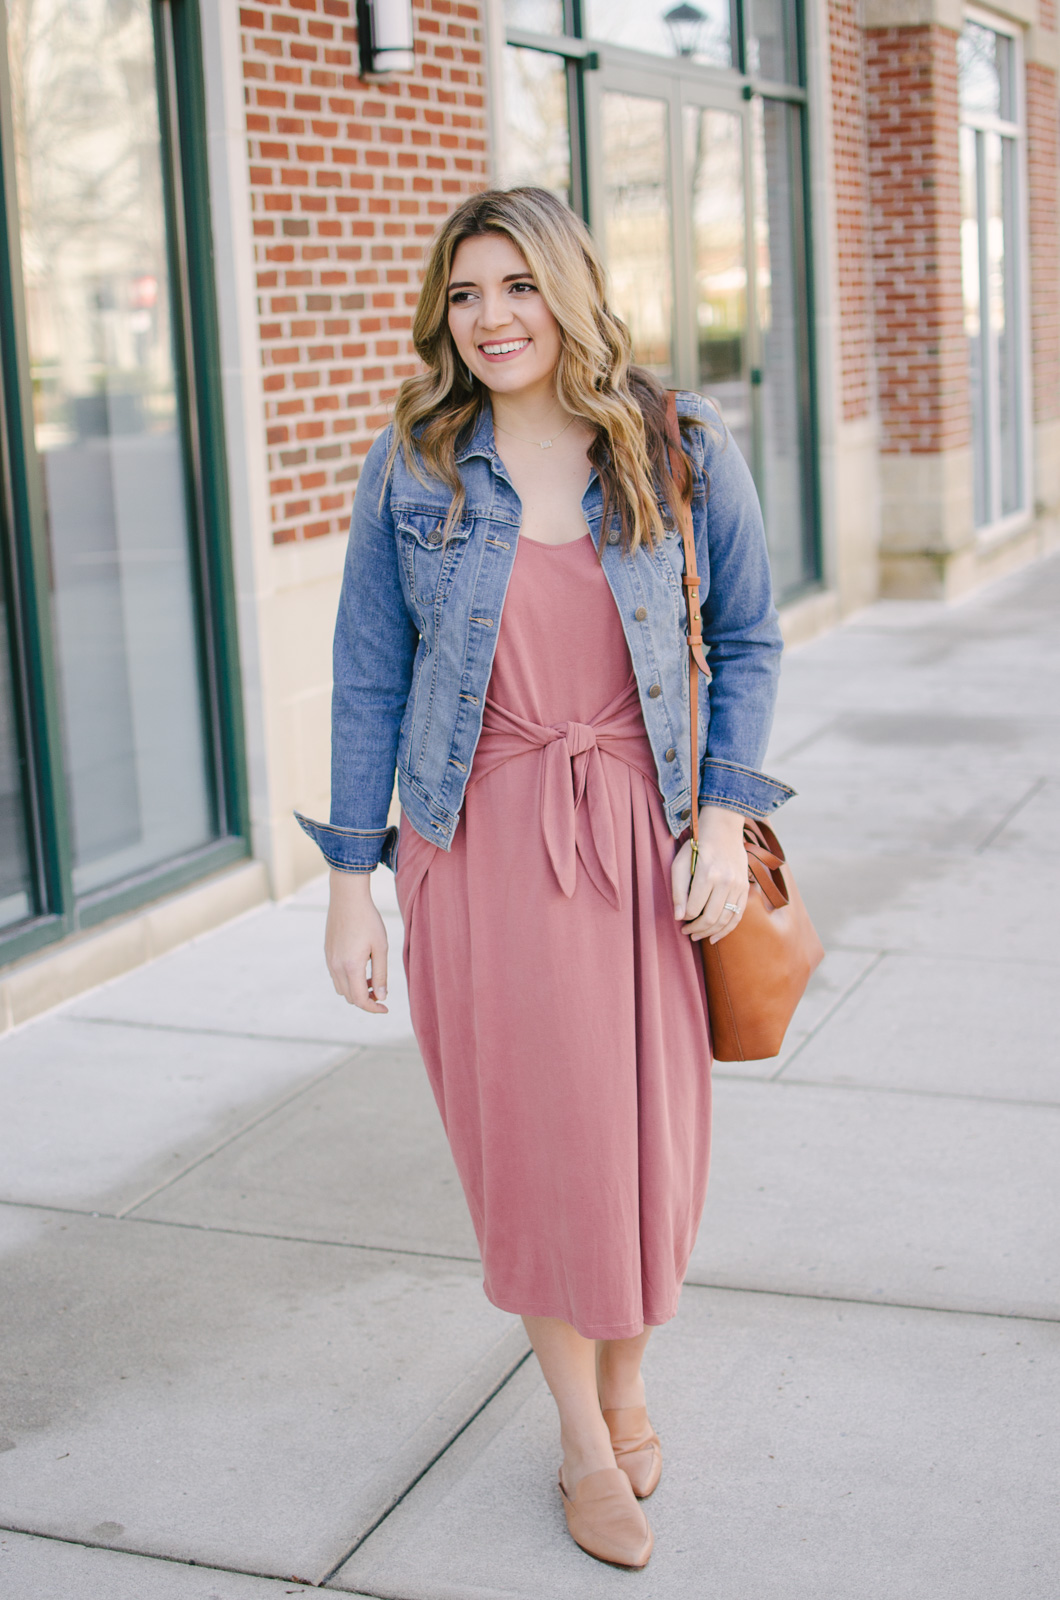 knotted midi dress outfit spring - classic spring outfit | Get outfit details for this spring midi dress outfit or see more cute spring outfit ideas at bylaurenm.com!